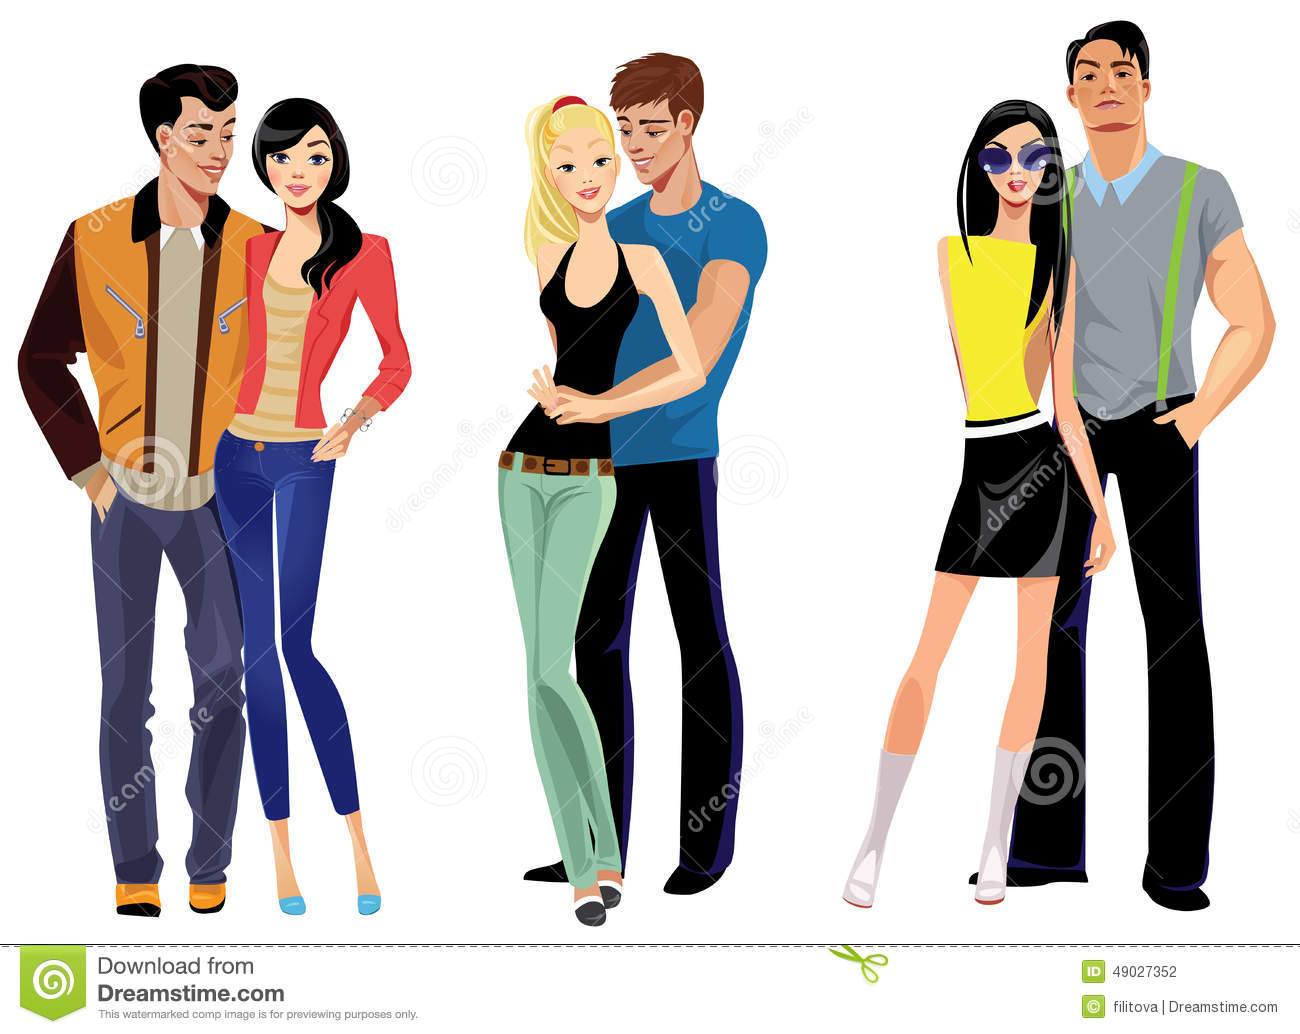 Couples Of People In Cafe Vector Illustration With Friends Men And Women Sitting At Tables